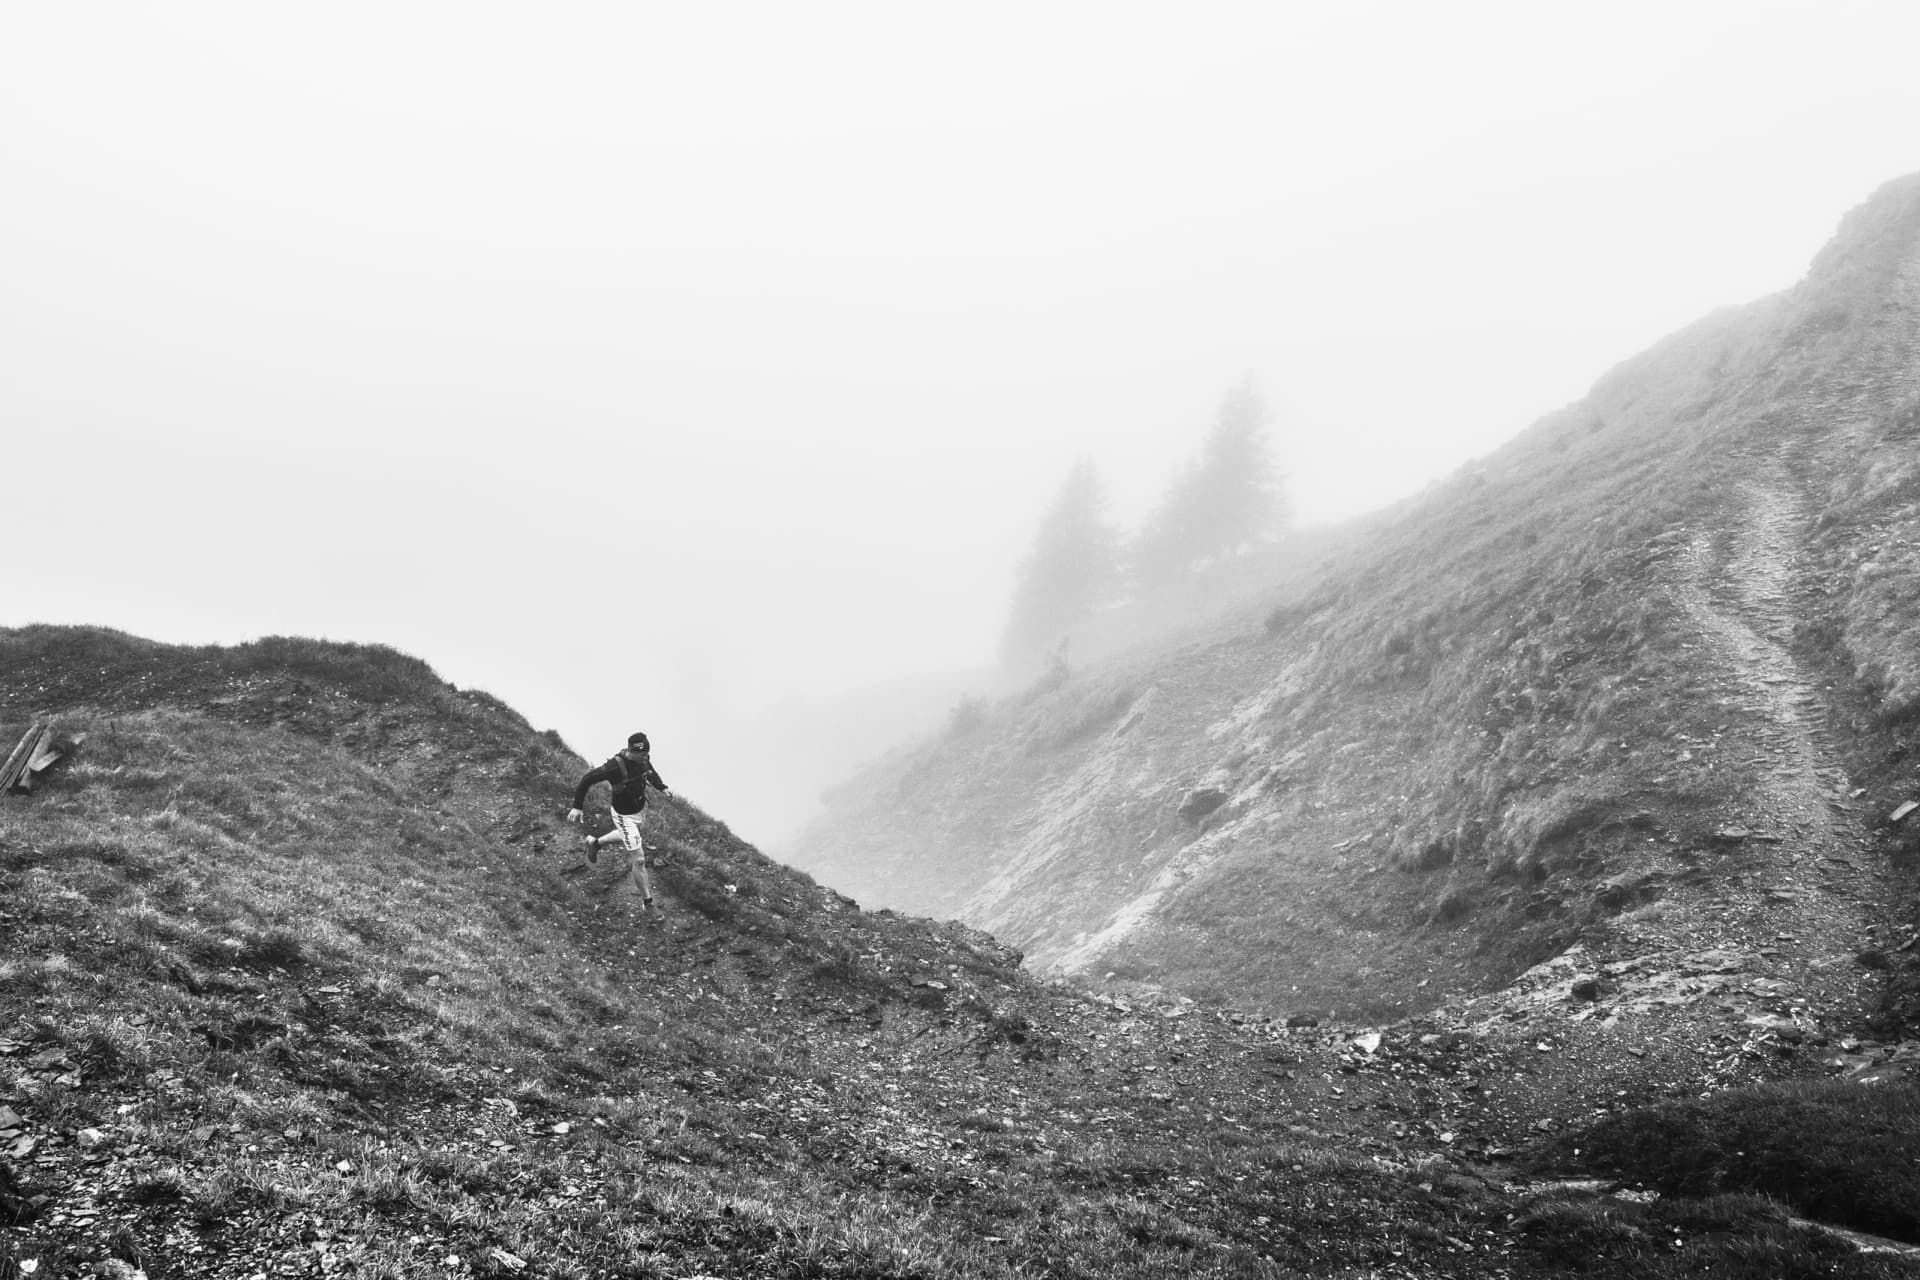 Thomas Infanger running trails in the fog at Brunni.